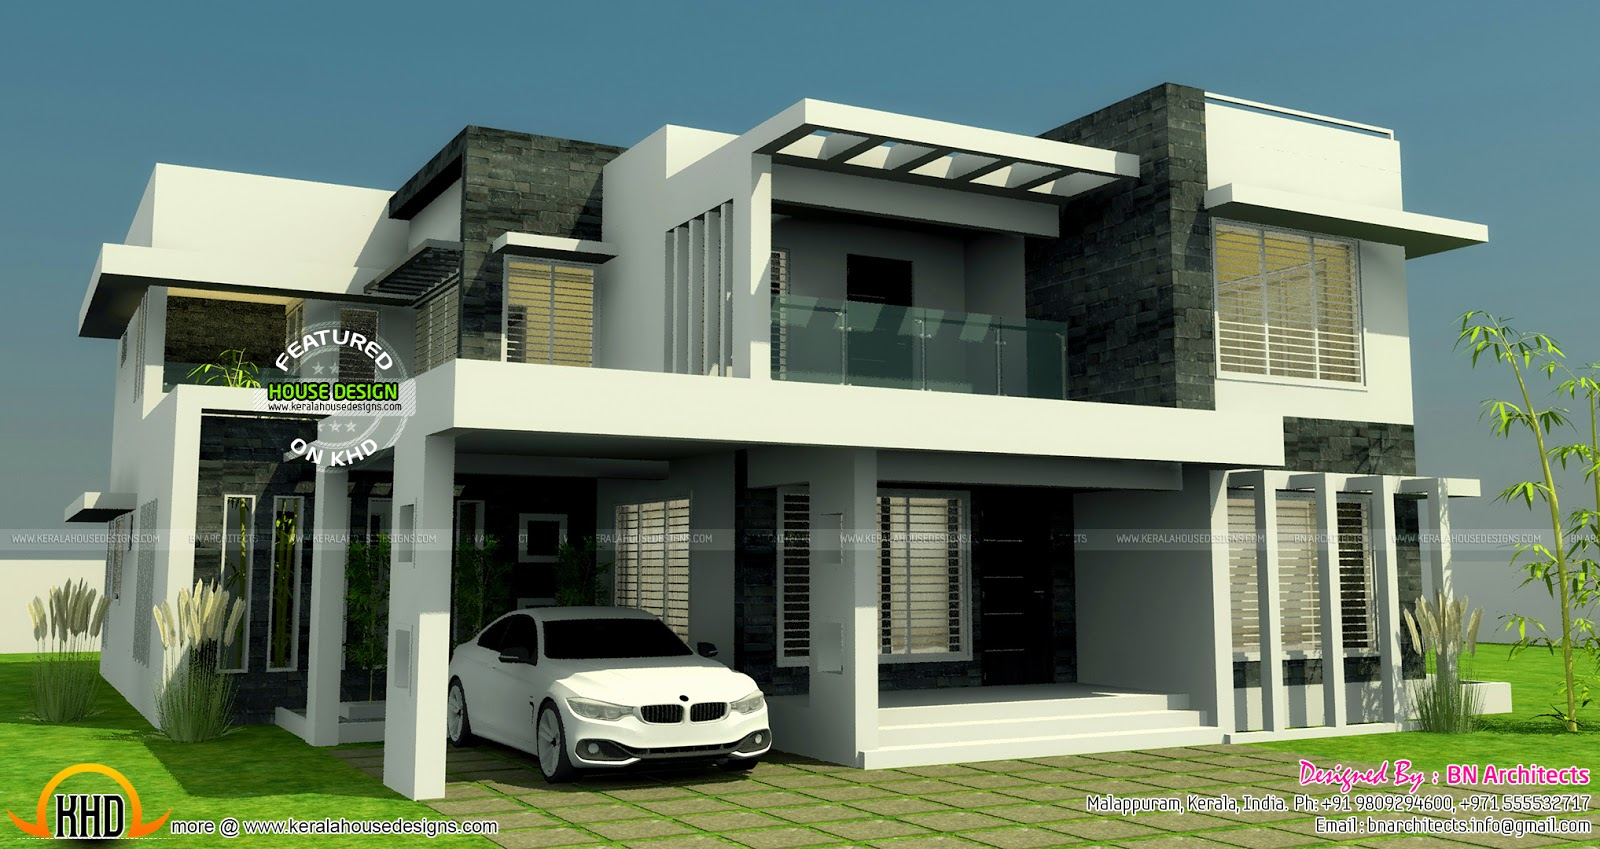 All in one house elevation floor plan and interiors for House design indian style plan and elevation